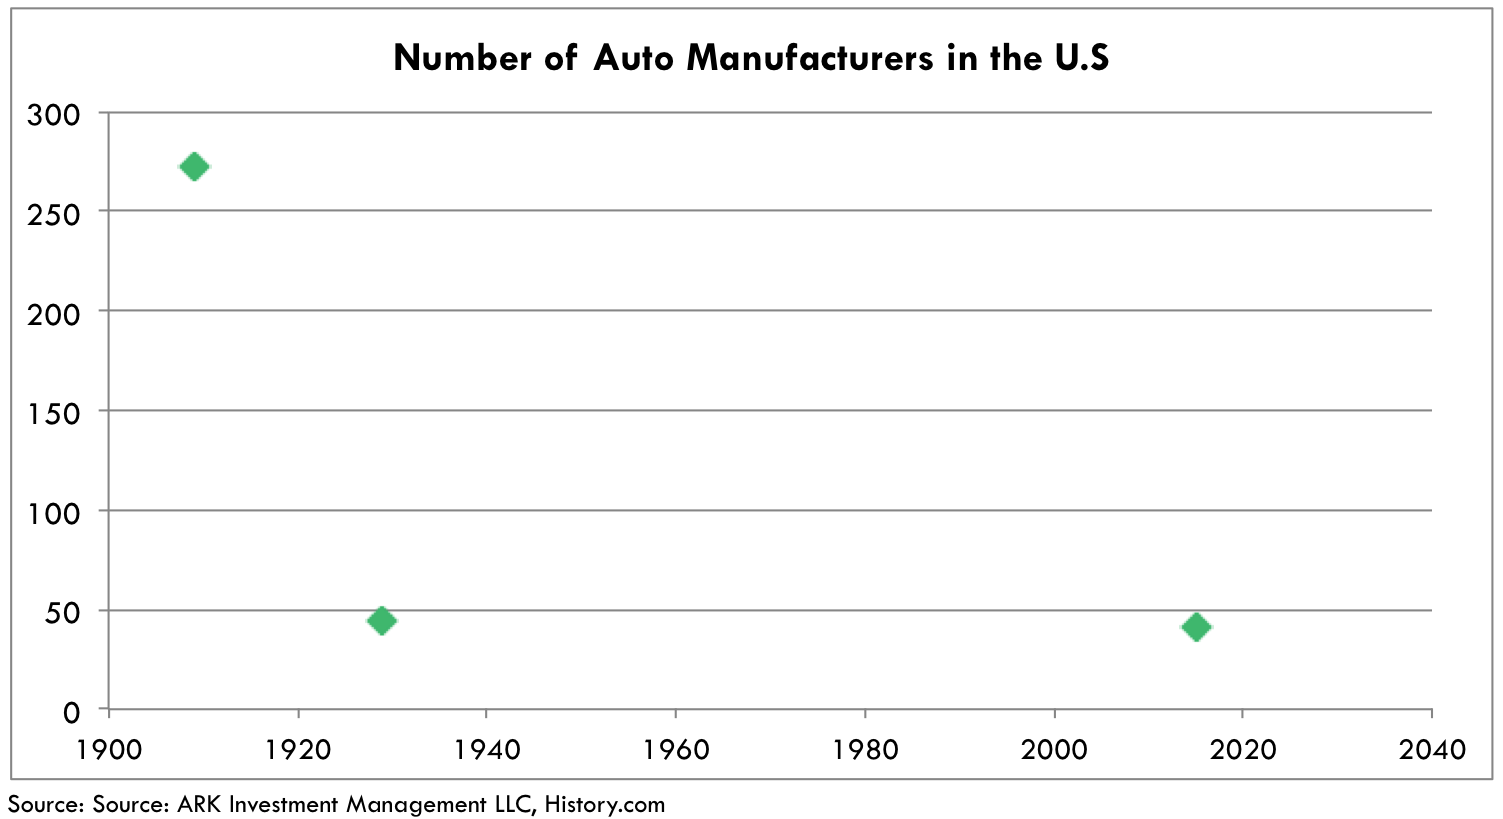 Number of automotive manufactureres, automotive consolidation, consolidation automotive industry, evs, ark research, electric vehicles, innovation research, industrial innovation